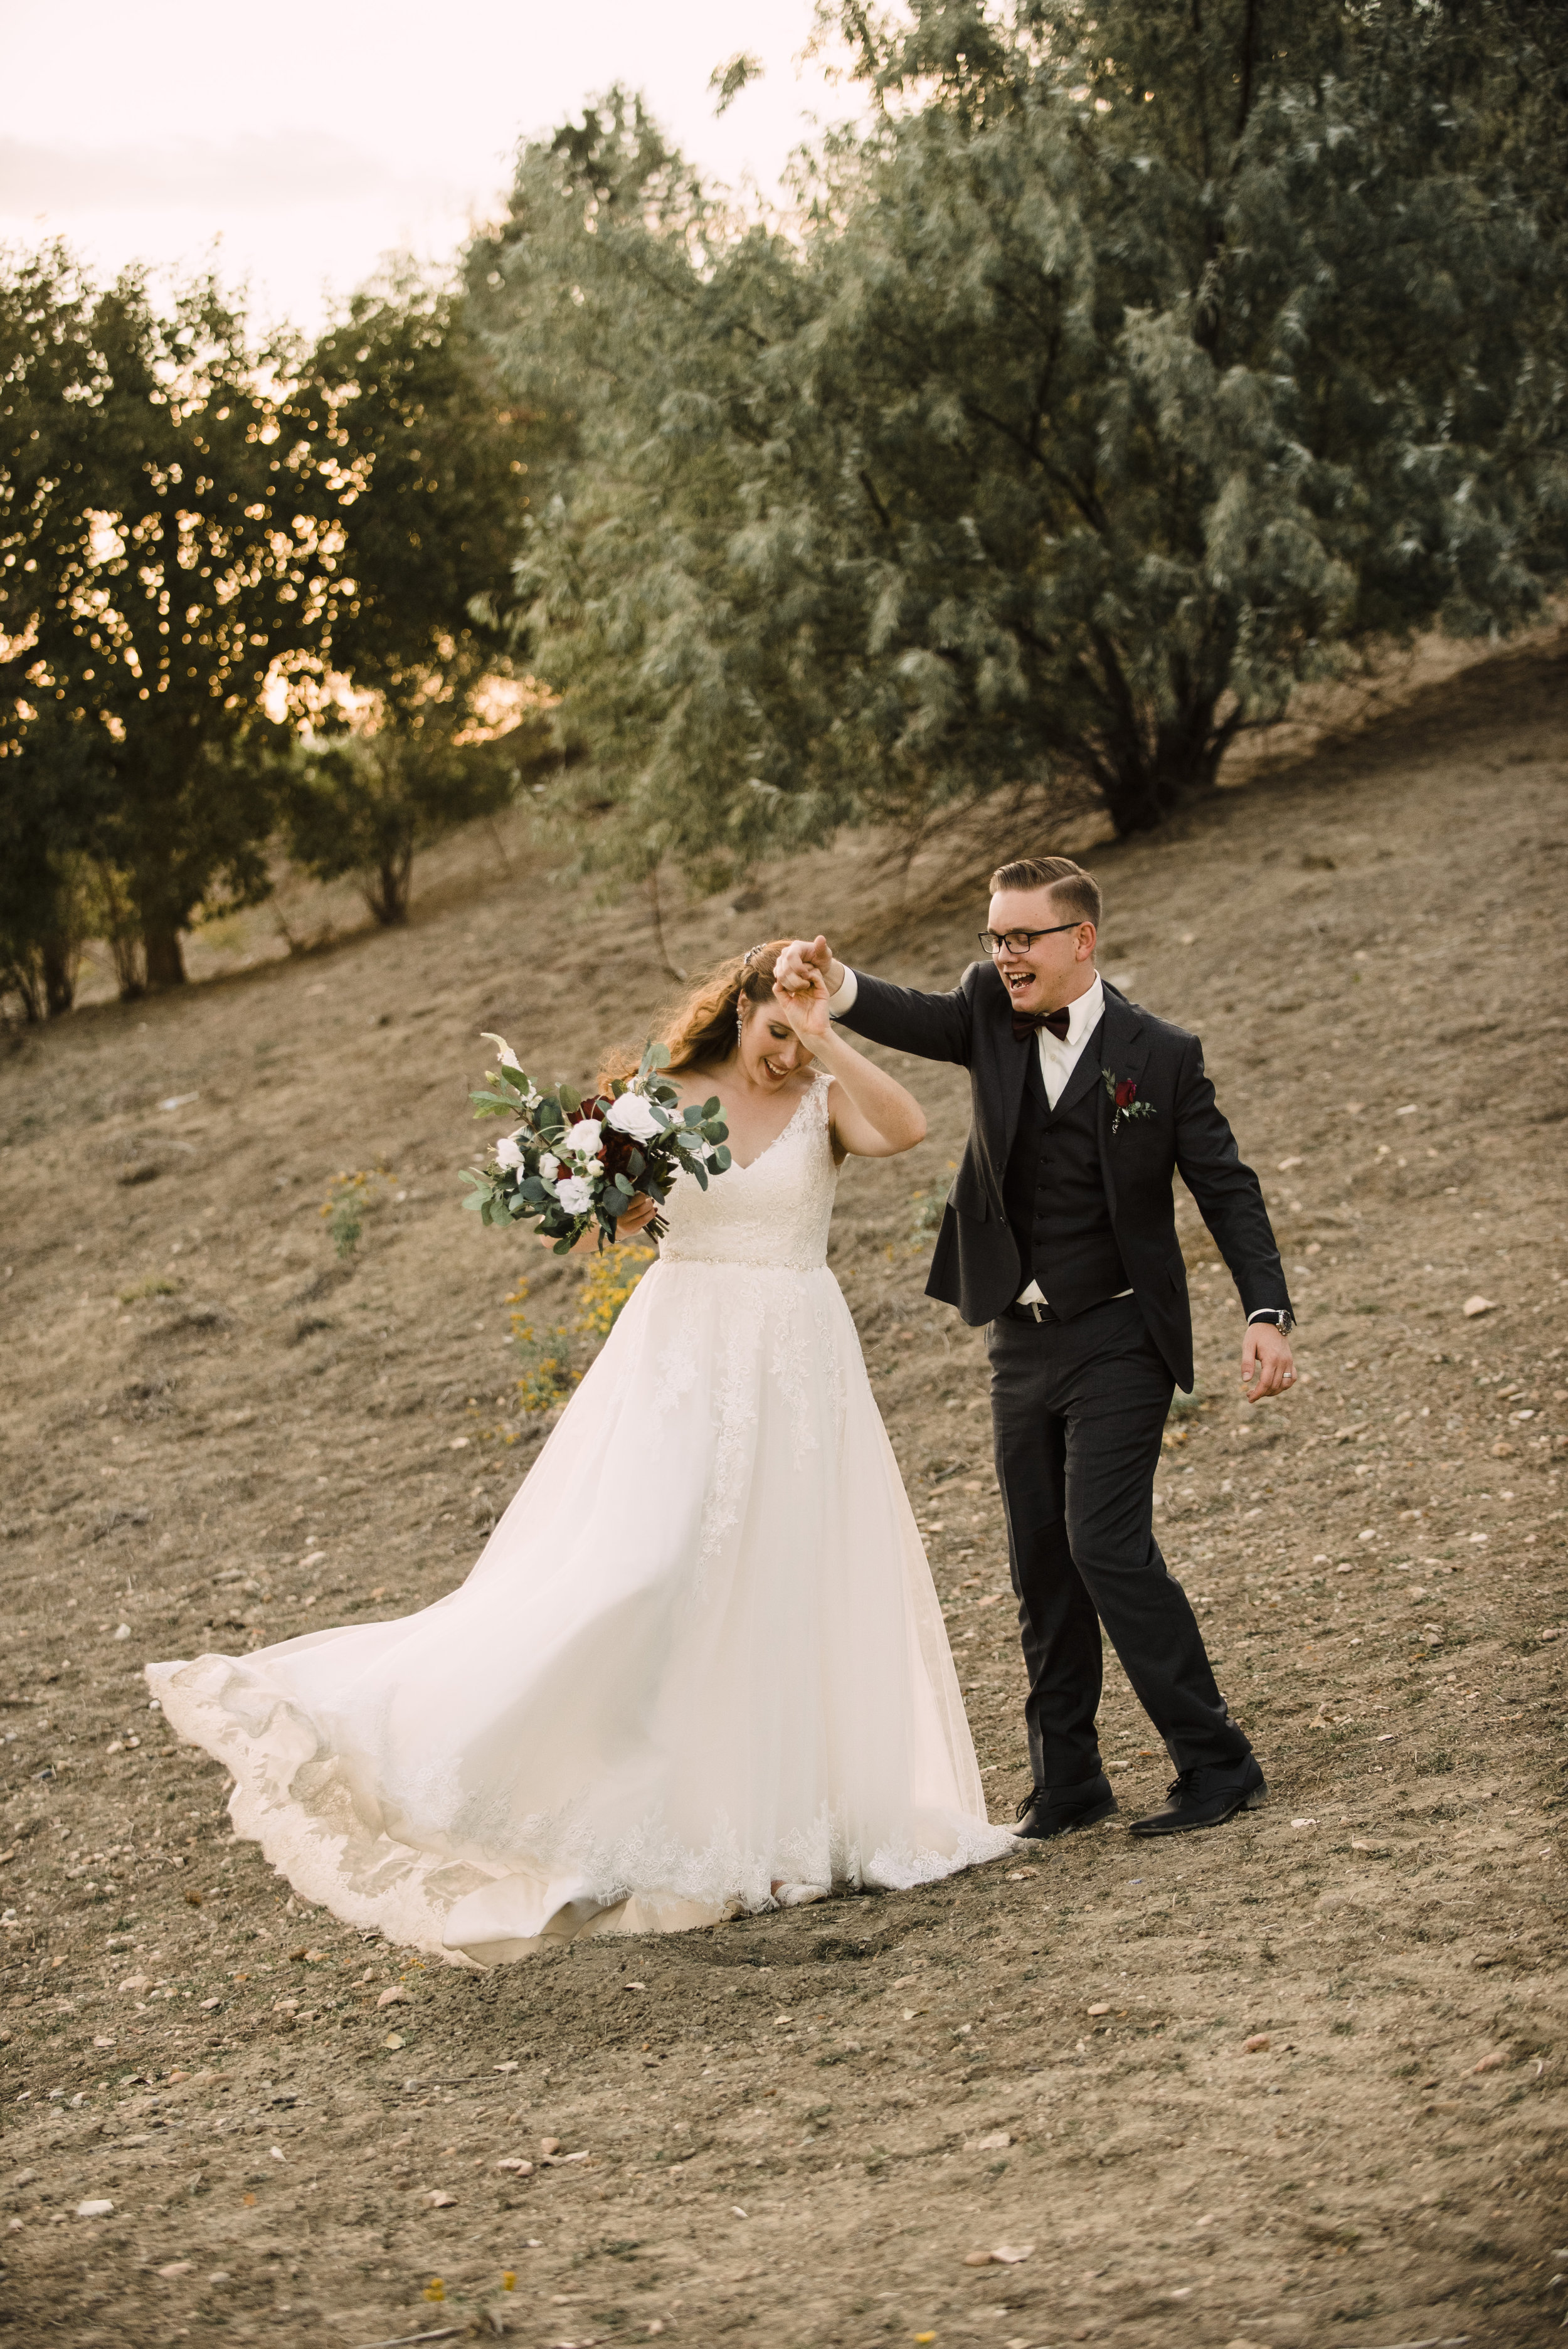 Mountain_Elopements_Apollo_Fields_Destination_Wedding_Photographers_Adventure_007.JPG